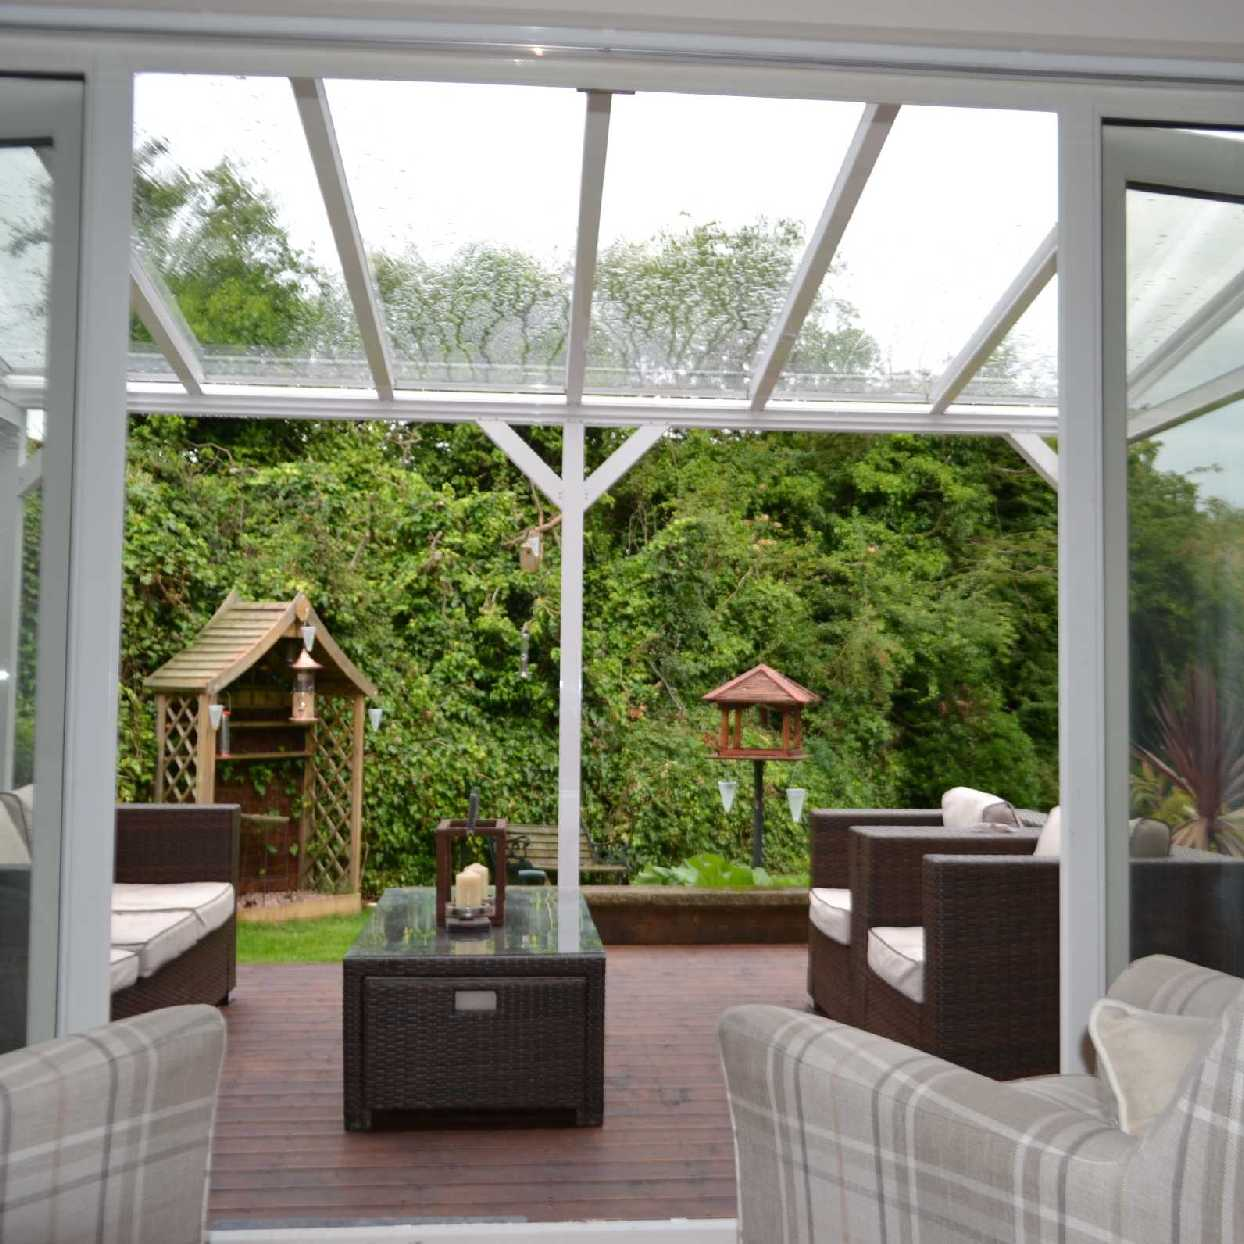 Great selection of Omega Smart Lean-To Canopy UNGLAZED for 6mm Glazing - 3.5m (W) x 3.5m (P), (3) Supporting Posts